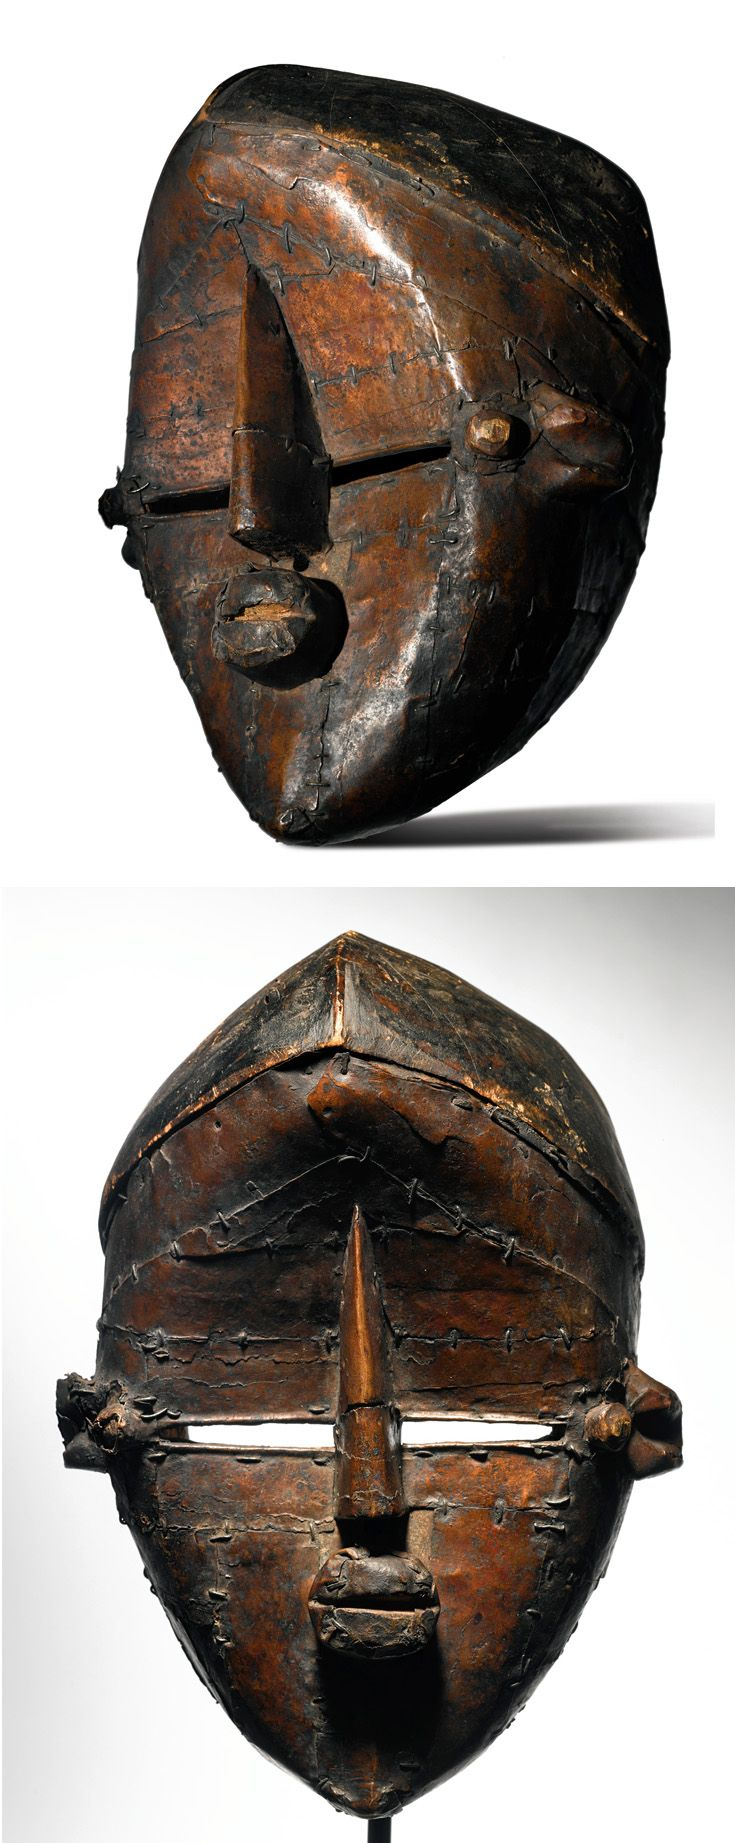 Africa | Mask from the Lwalwa (Lwalu) people of DR Congo | Wood covered in metal (copper sheeting / hammered copper) | 2nd half of the 20th century